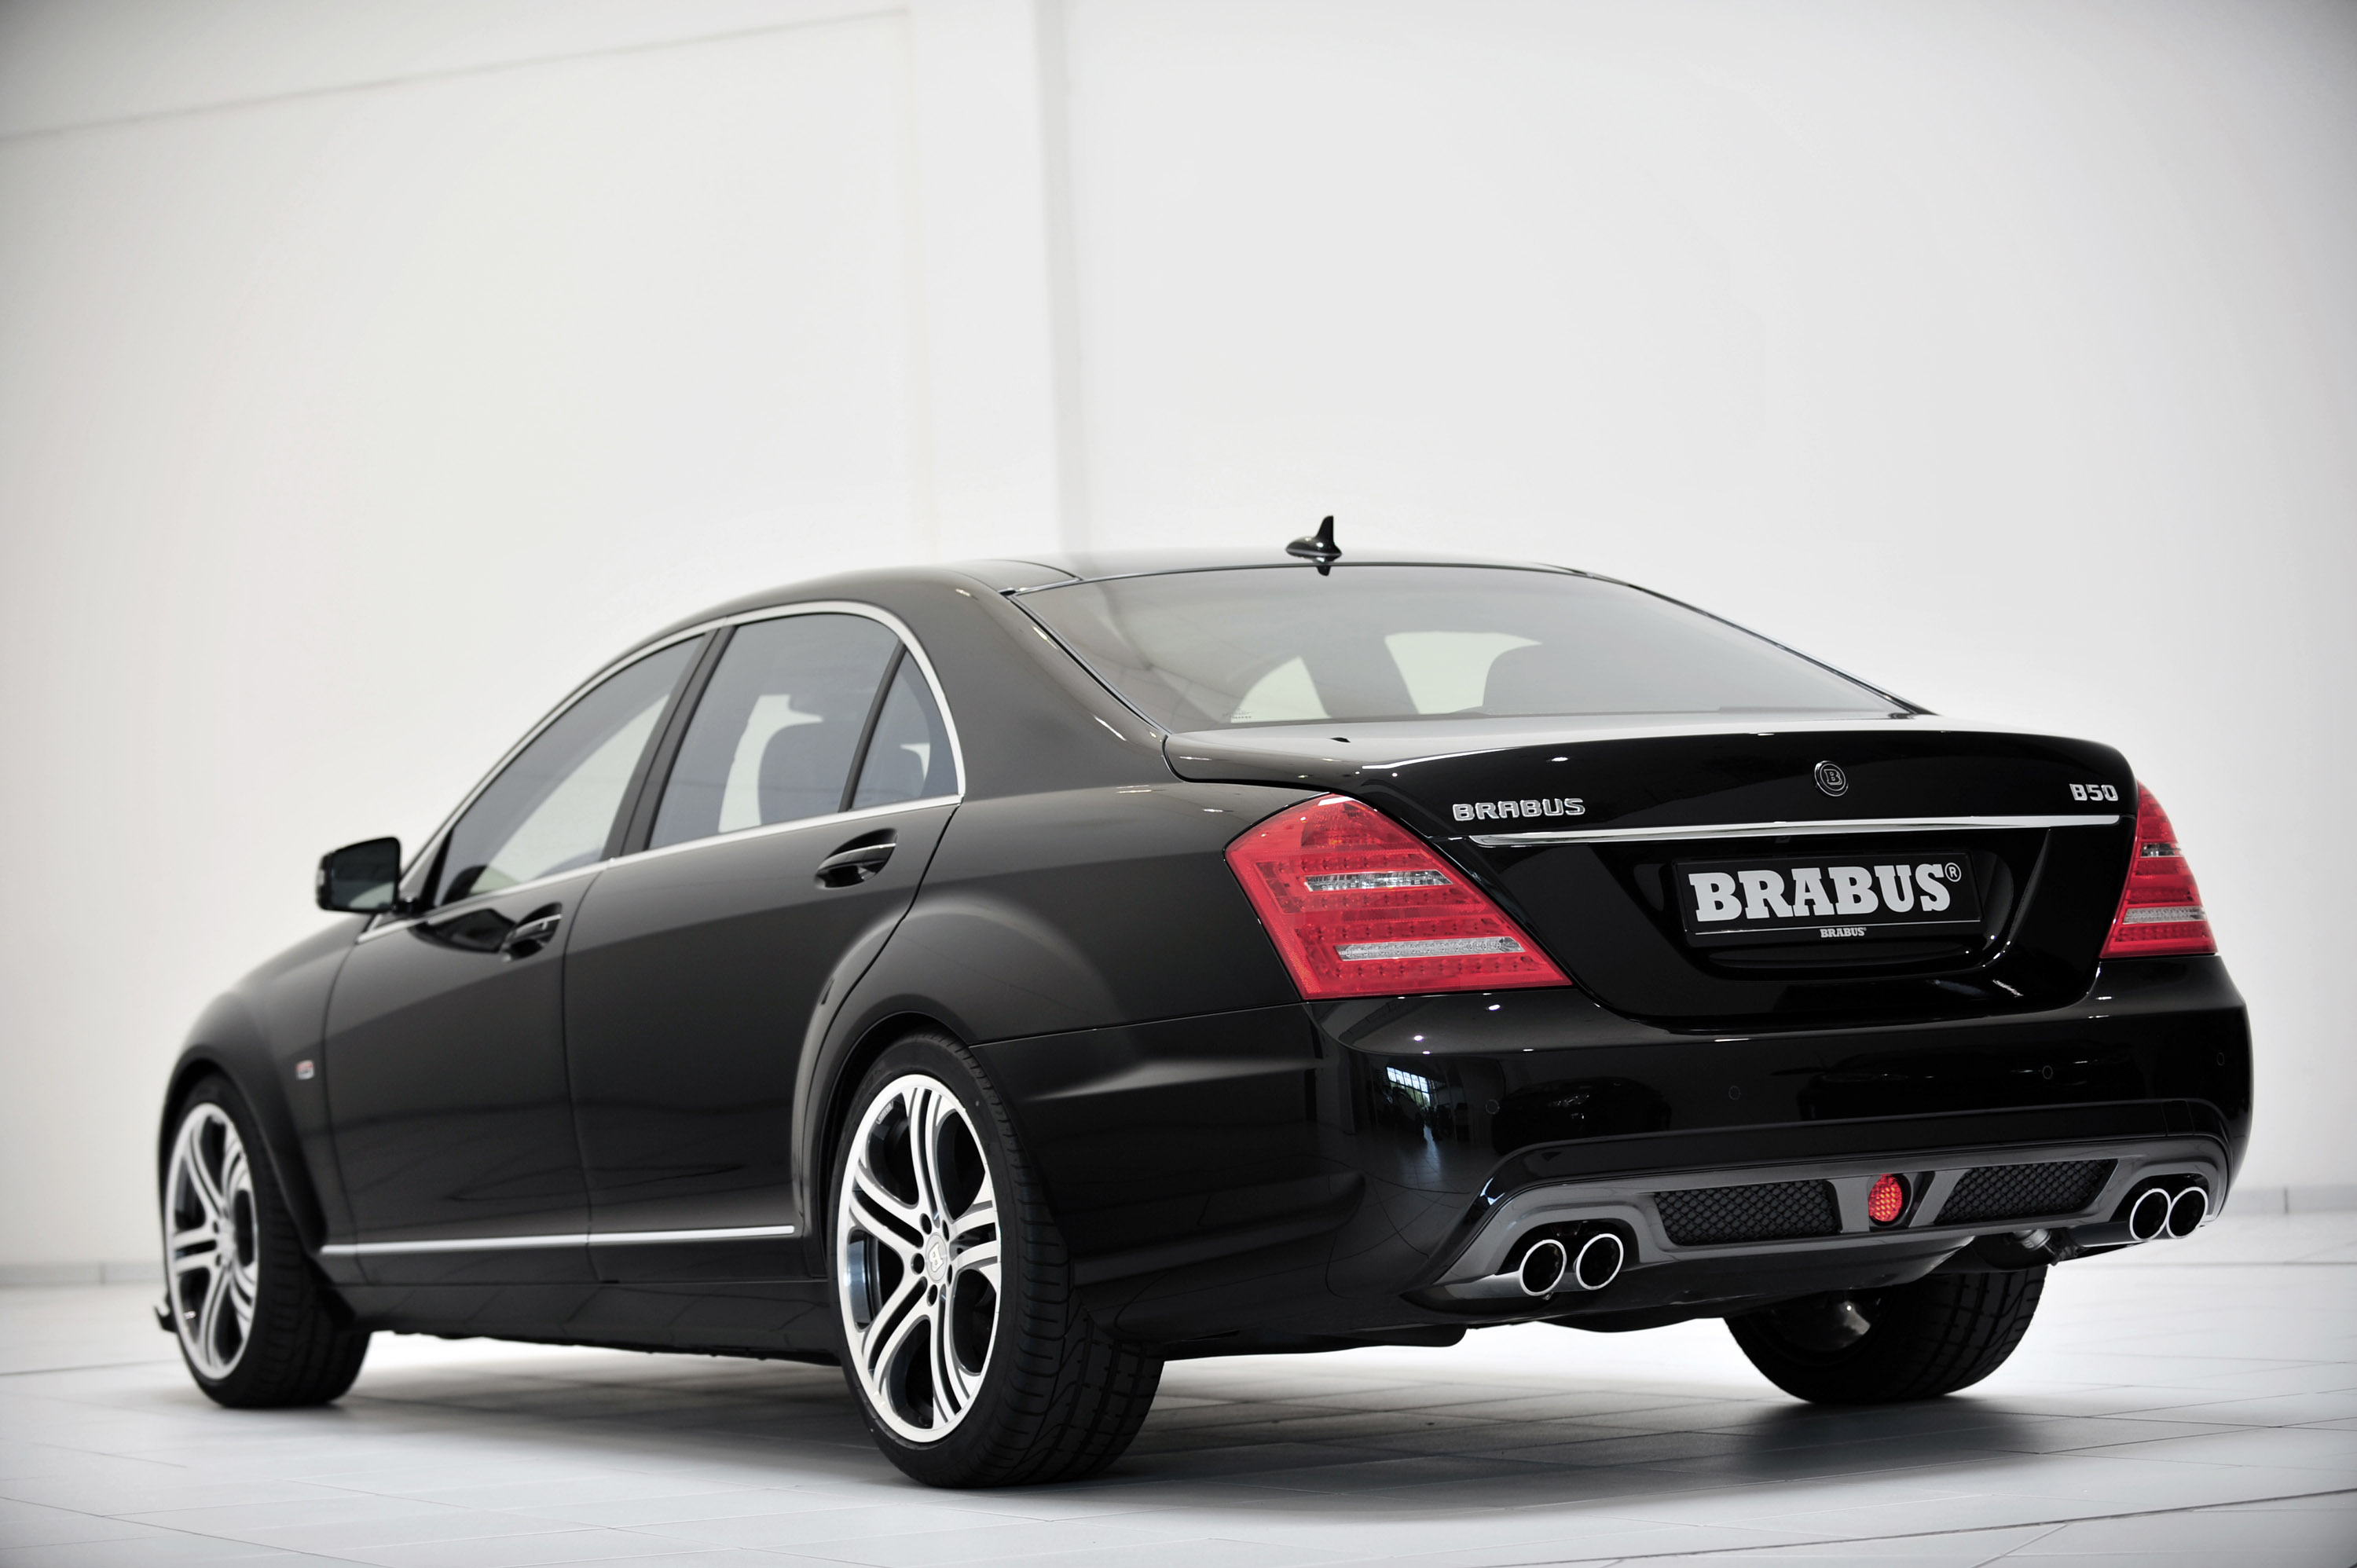 Brabus goodies for mercedes e class amg and s class amg for Mercedes benz upgrades